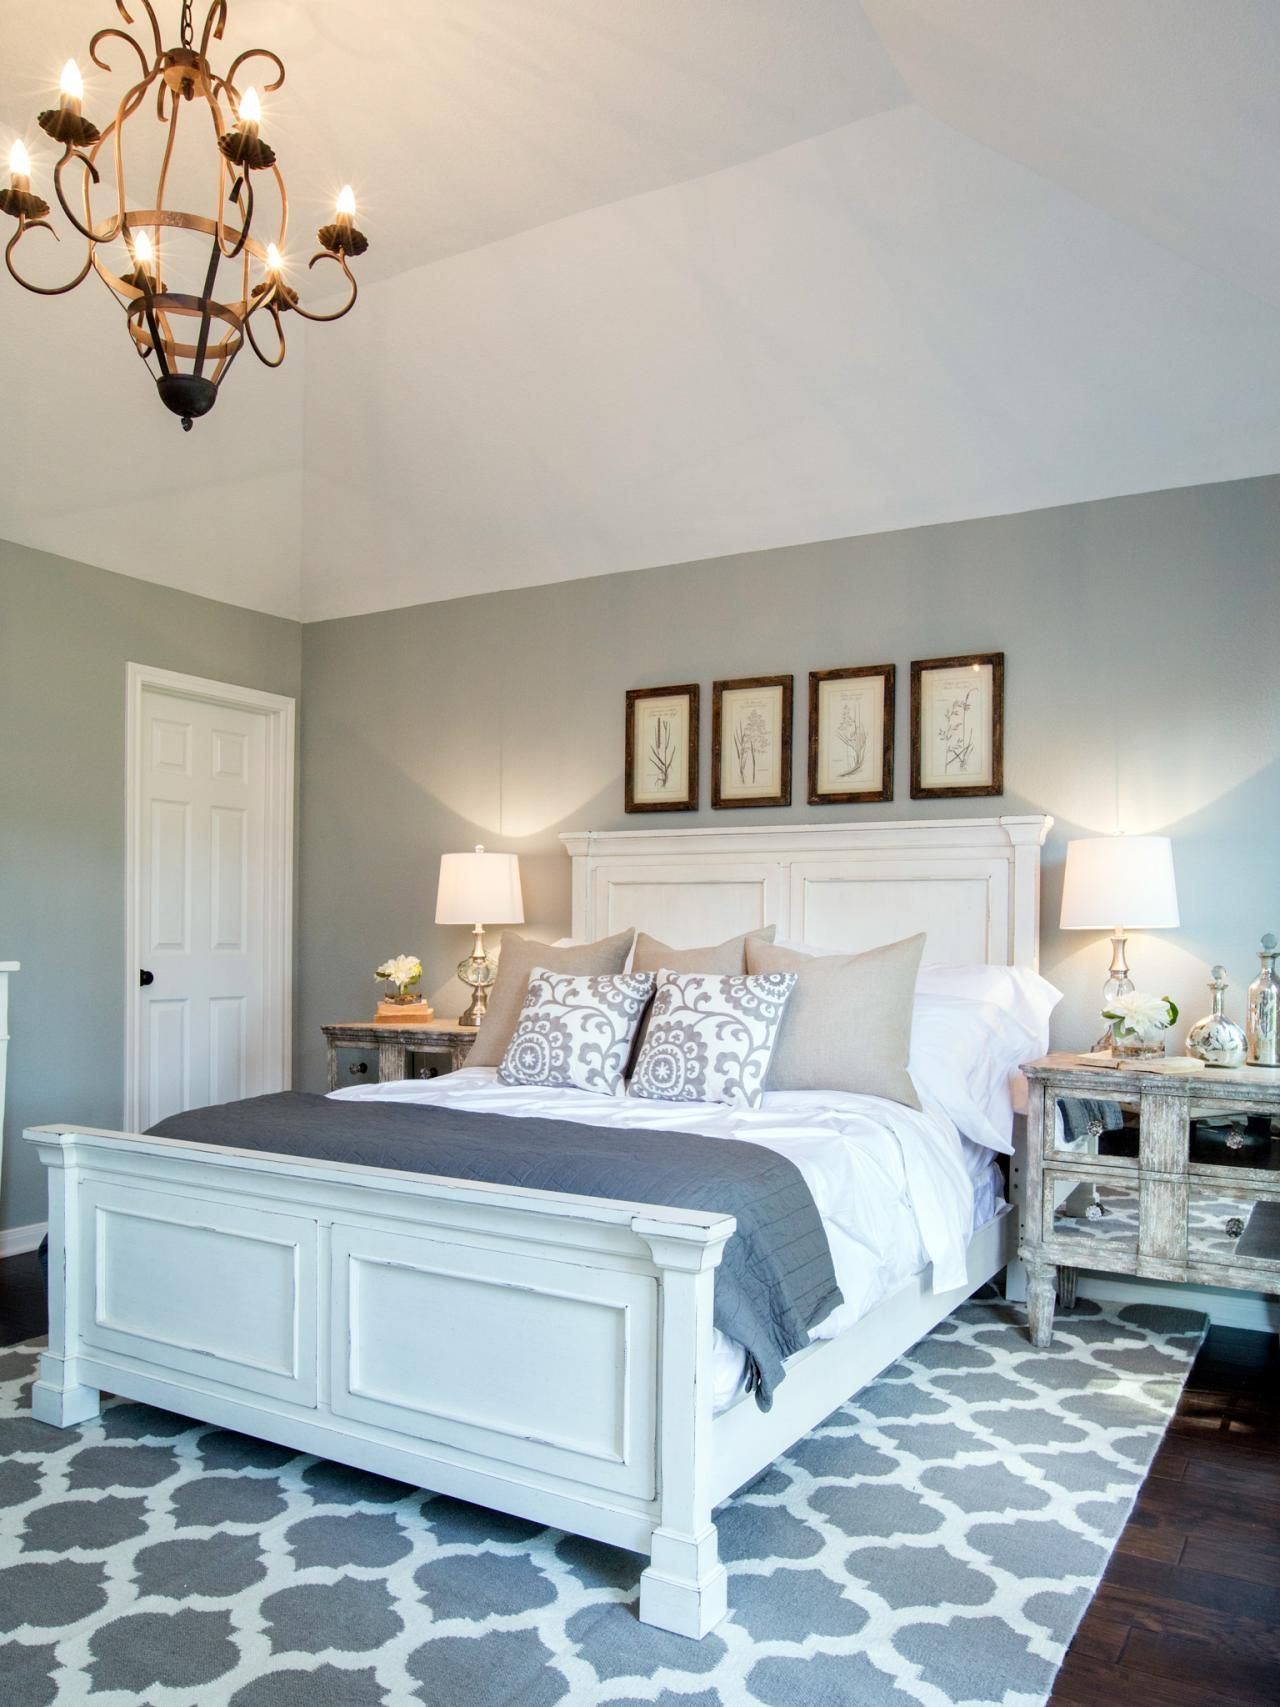 Photos | HGTV's Fixer Upper With Chip and Joanna Gaines | HGTV ... on hgtv bedroom makeovers, hgtv girls bedroom ideas, hgtv color ideas, hgtv bedroom projects, hgtv wall decor ideas, romantic bedroom ideas, hgtv interior ideas, hgtv spring ideas, hgtv kitchen ideas, hgtv guest bedroom ideas, tuscan style kitchen decorating ideas, rooms for teenage girl bedroom ideas, hgtv garden ideas, cottage style bedrooms decorating ideas, hgtv bedroom inspiration, hgtv bedroom curtains, nautical bedroom decor ideas, hgtv bedroom themes, grey tufted headboard bedroom ideas, hgtv bedroom storage ideas,